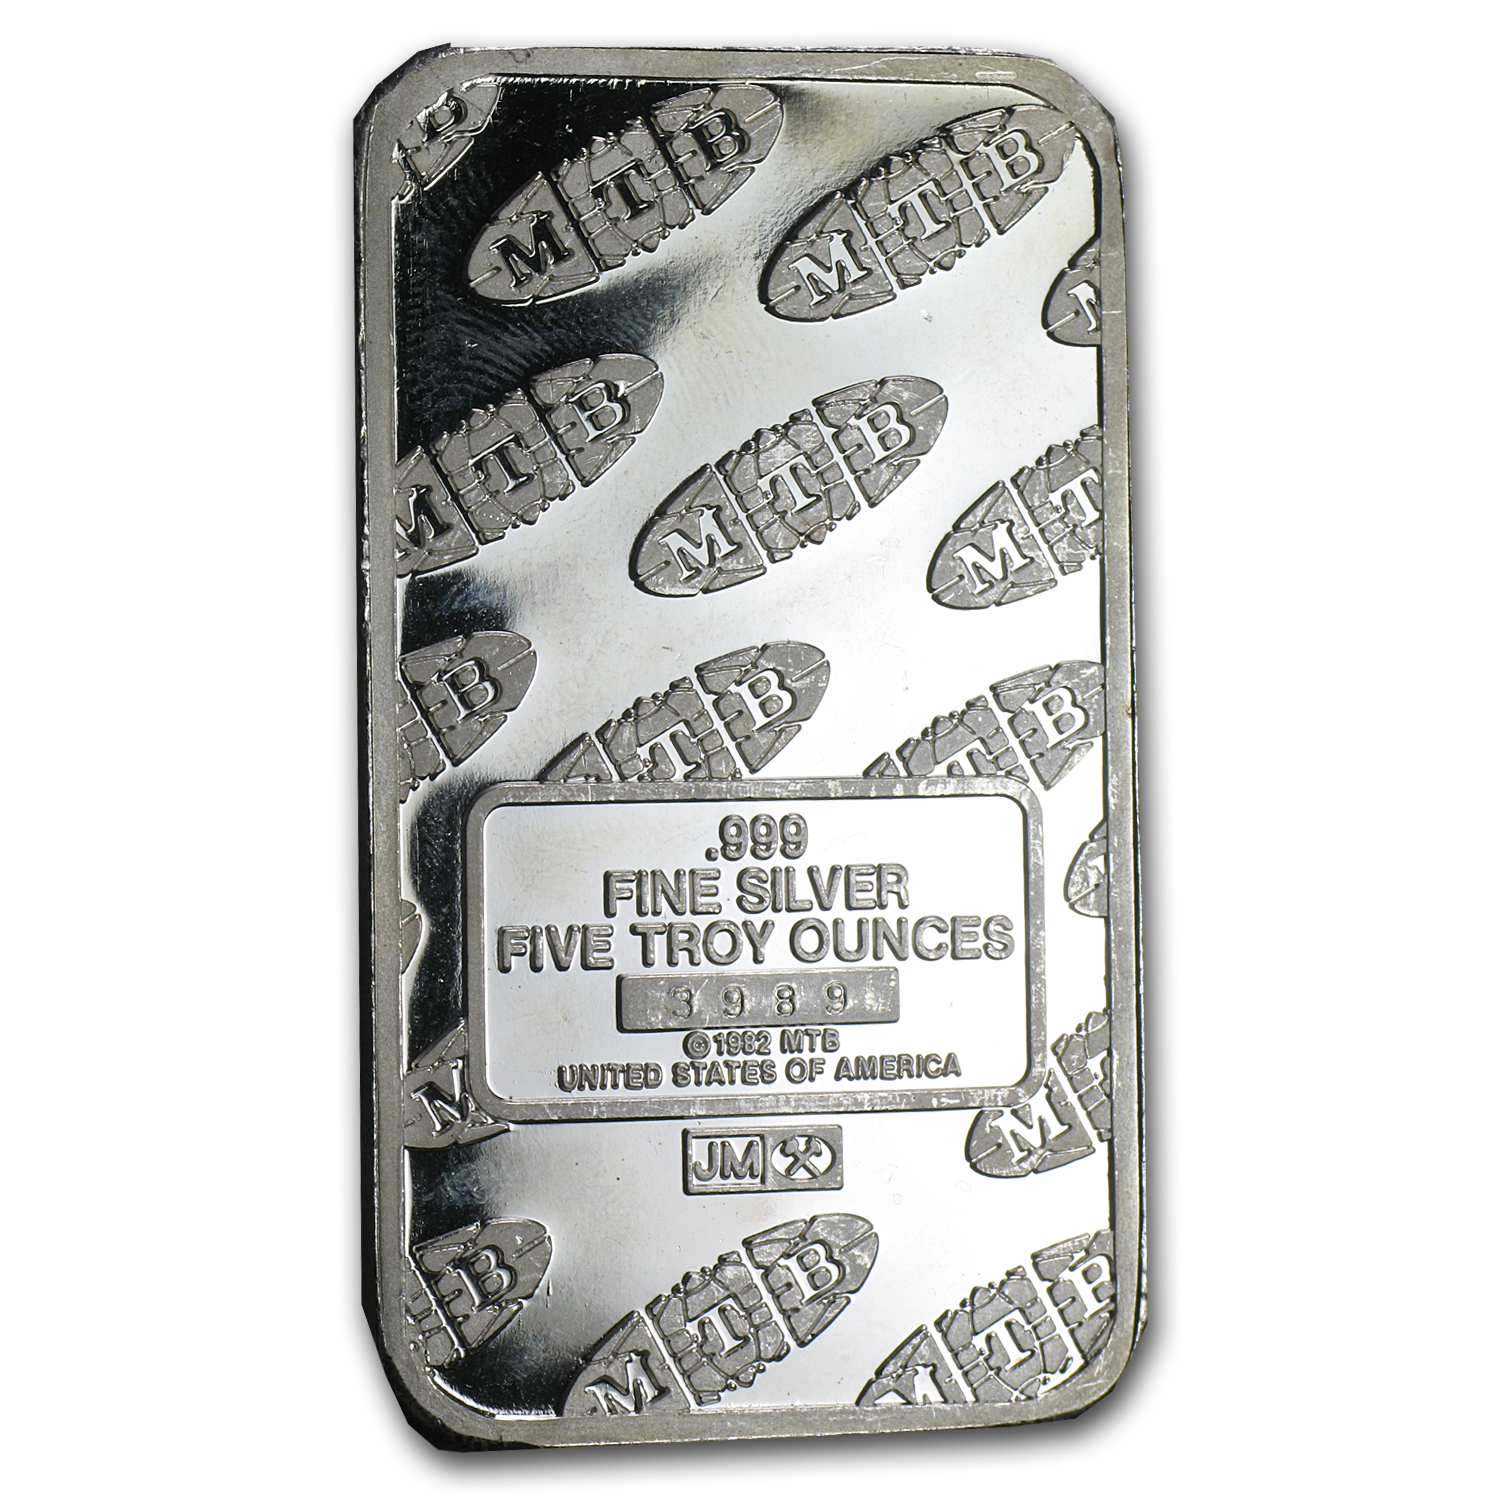 5 oz Silver Bars - Johnson Matthey (Statue of Liberty/MTB)